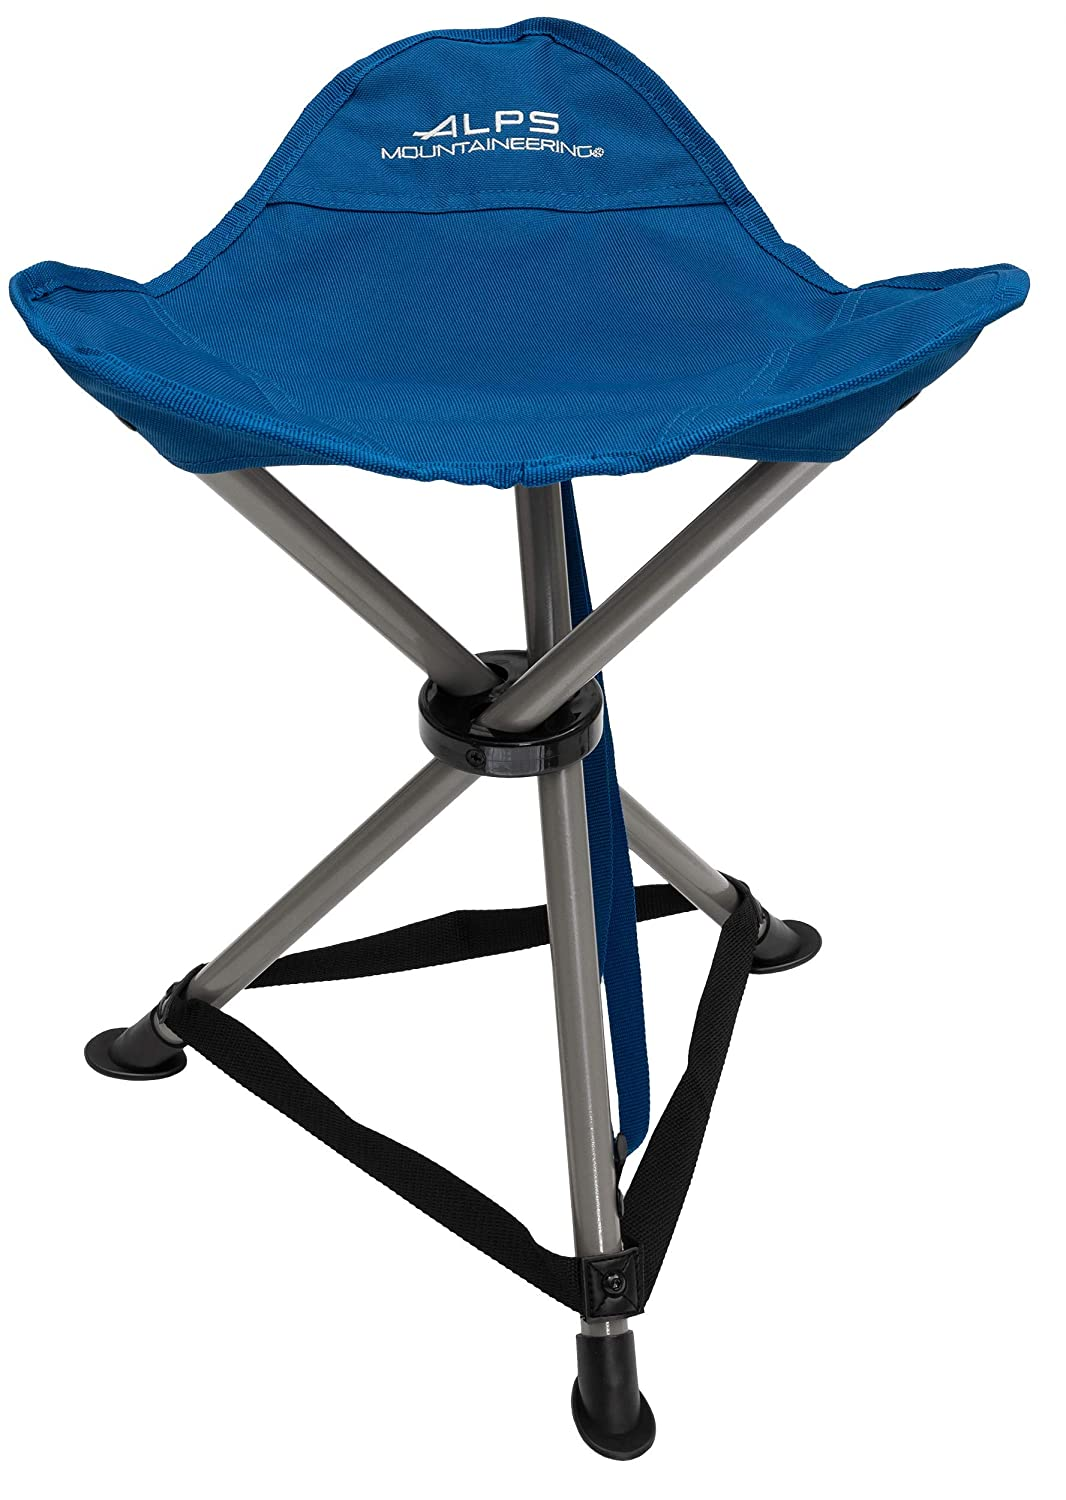 Sensational Alps Mountaineering Tri Leg Stool Gamerscity Chair Design For Home Gamerscityorg